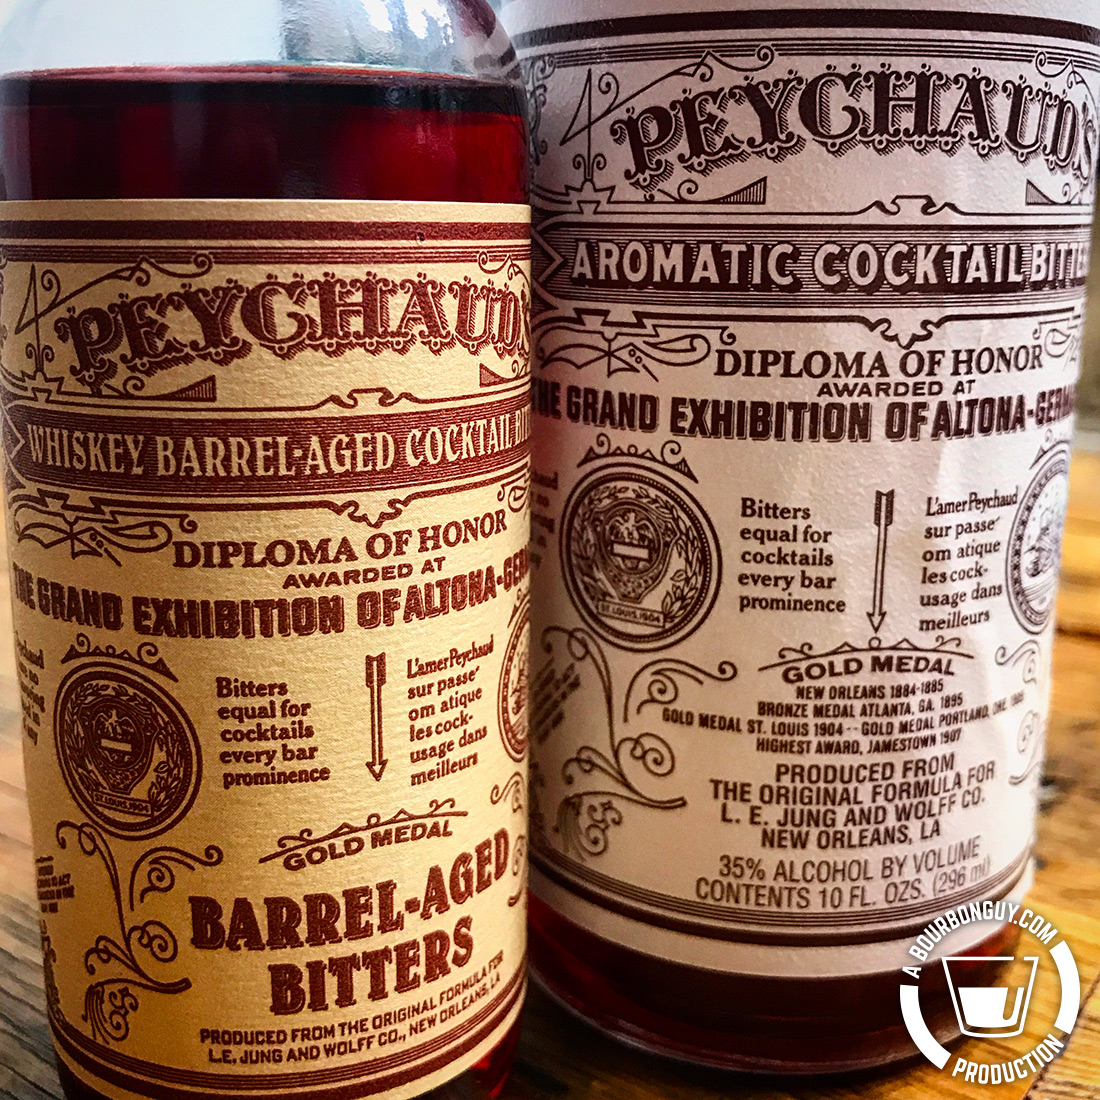 IMAGE: Two bottles of Paychaud's Bitters. One Barrel-aged, one standard.